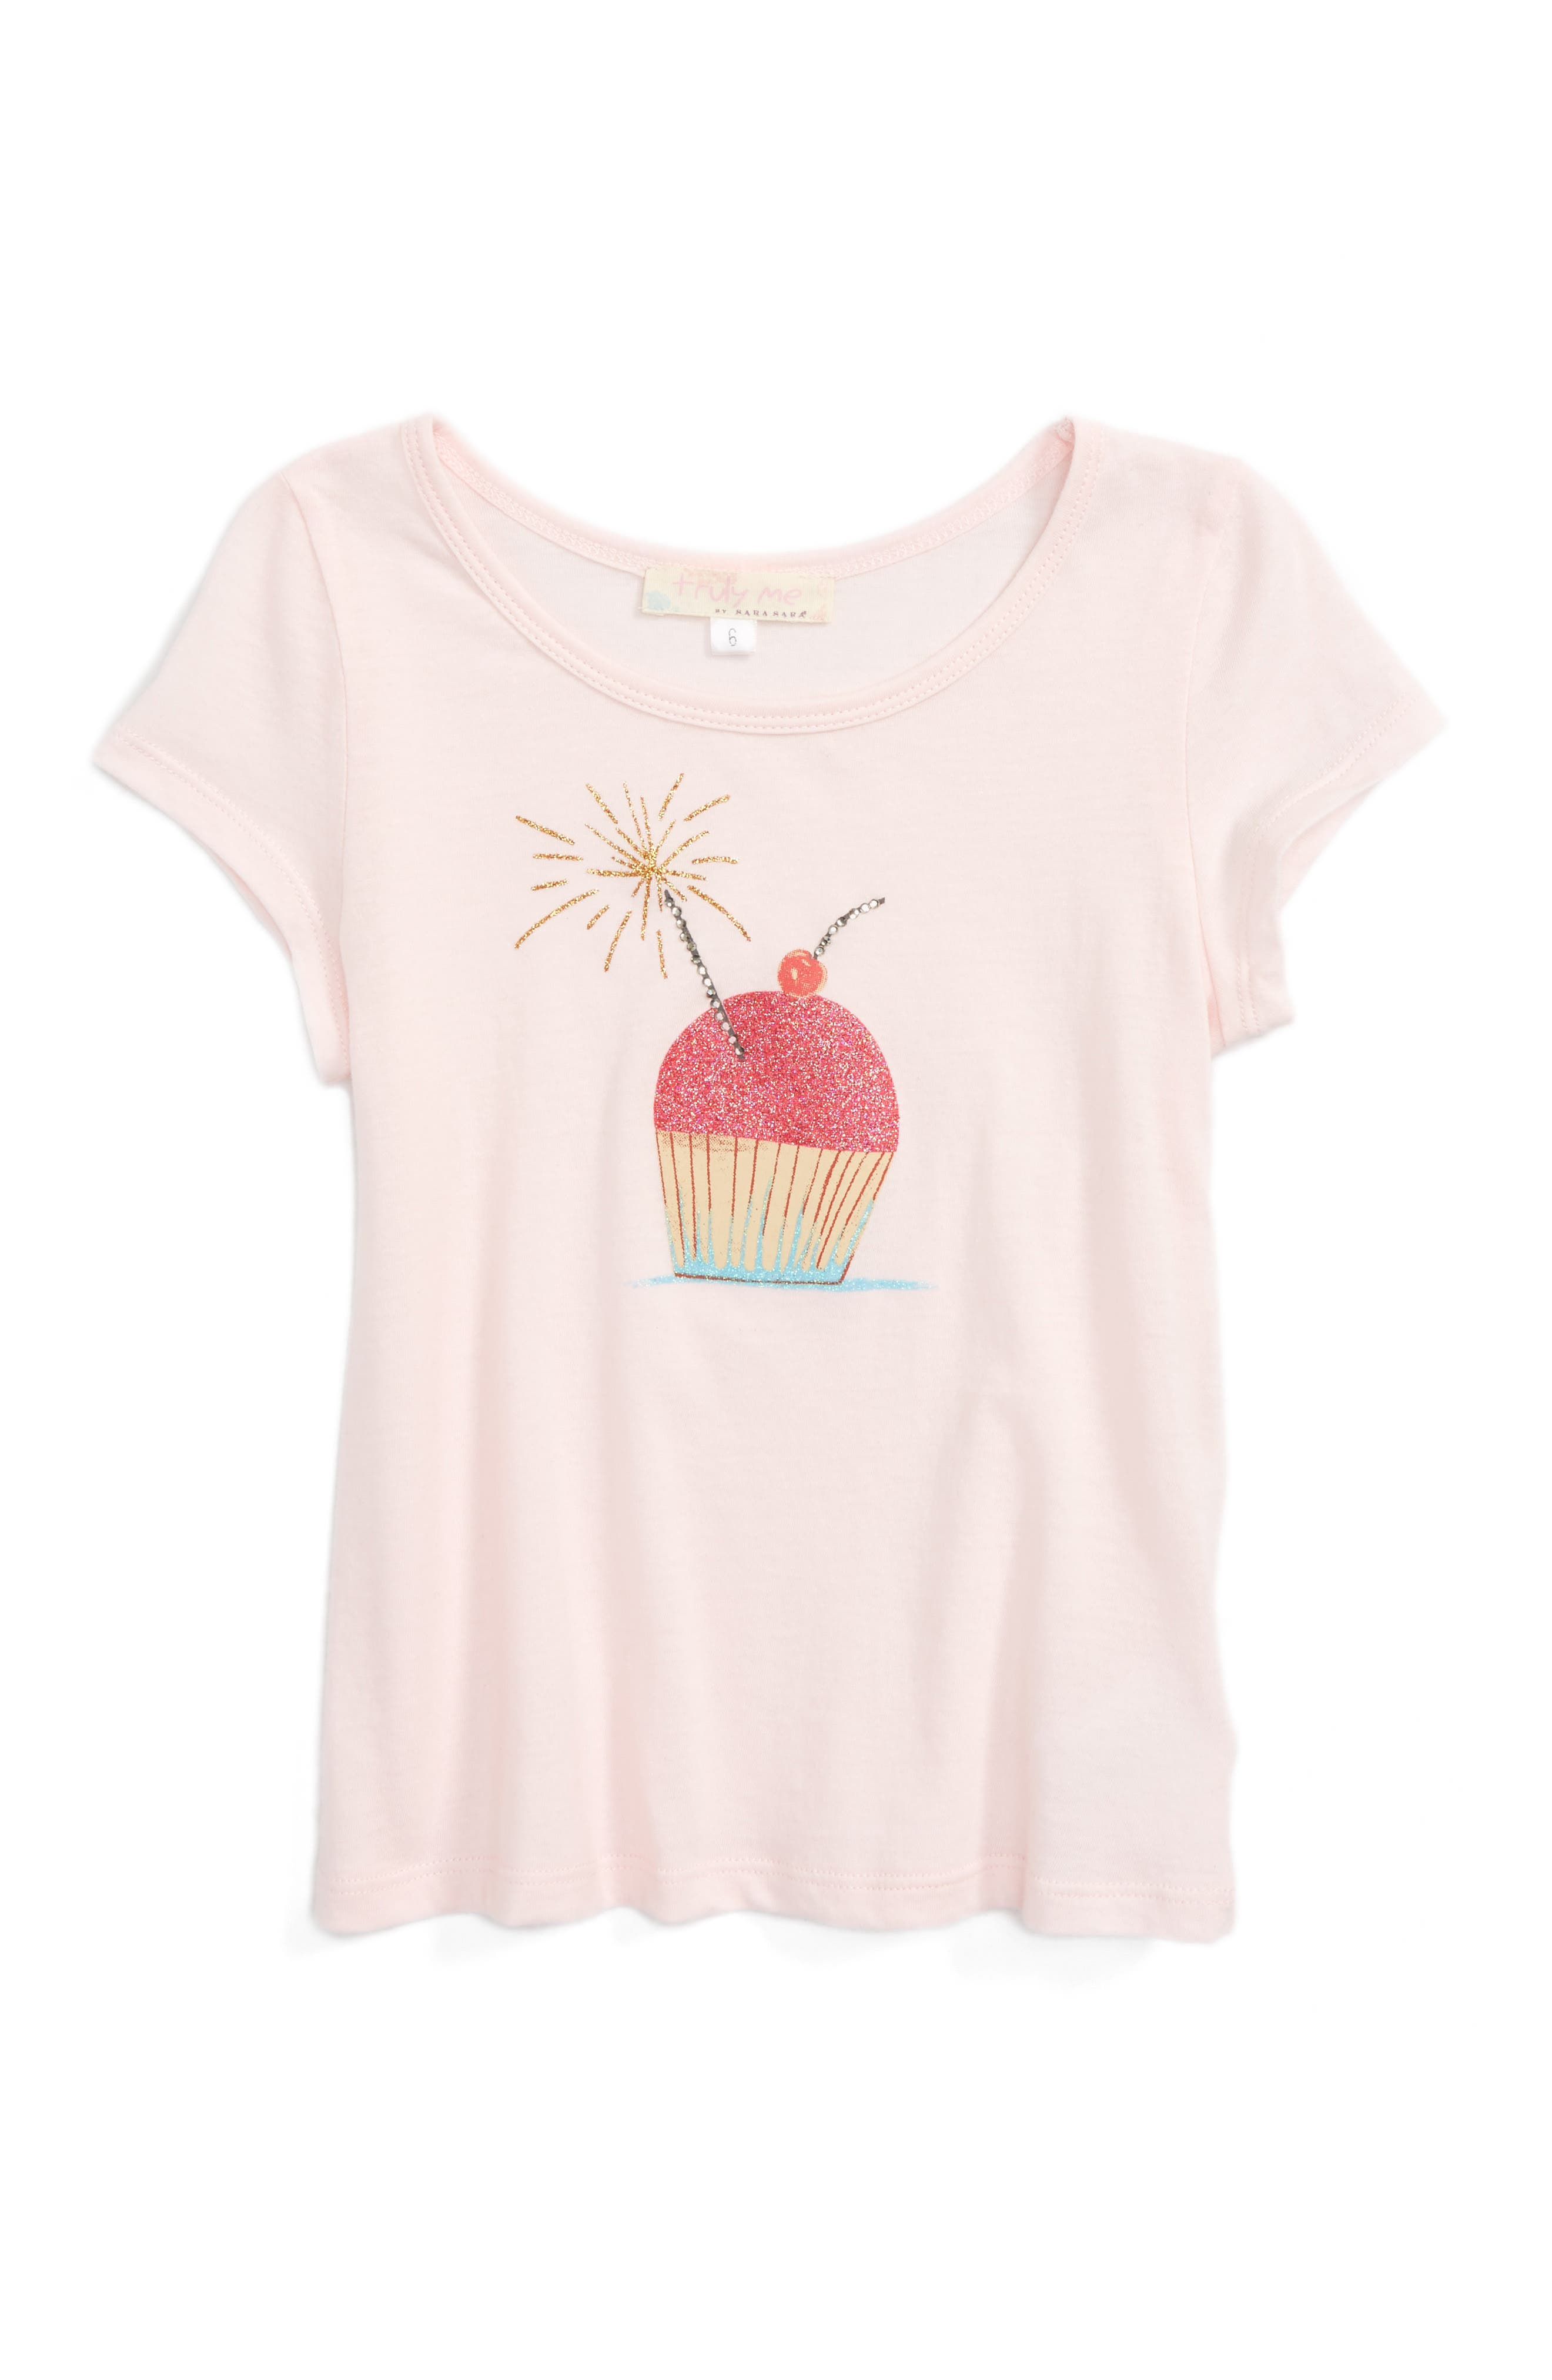 Truly Me Cake Graphic Tee (Toddler Girls & Little Girls)